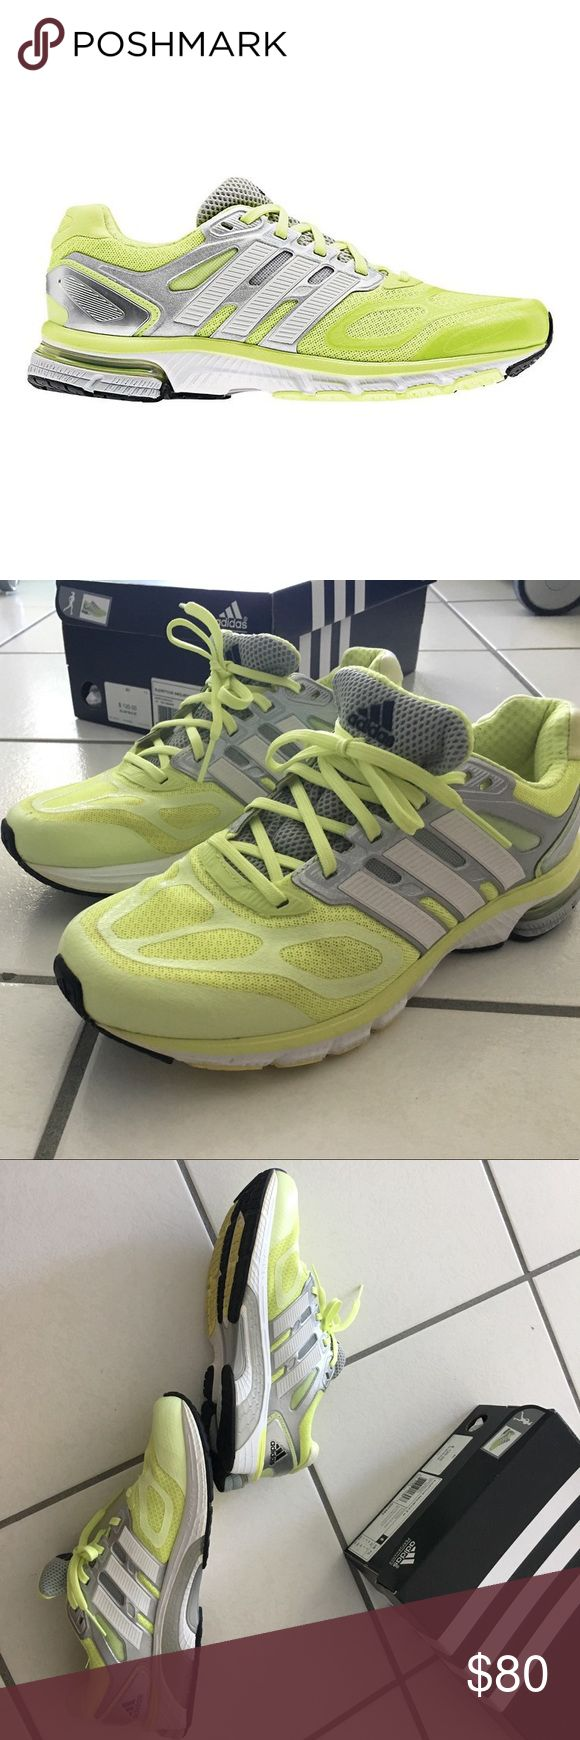 Adidas Supernova sequence three times used, literally new!!! very comfy for everyday 💪🏽🎾🏃🏼 adidas Shoes Sneakers